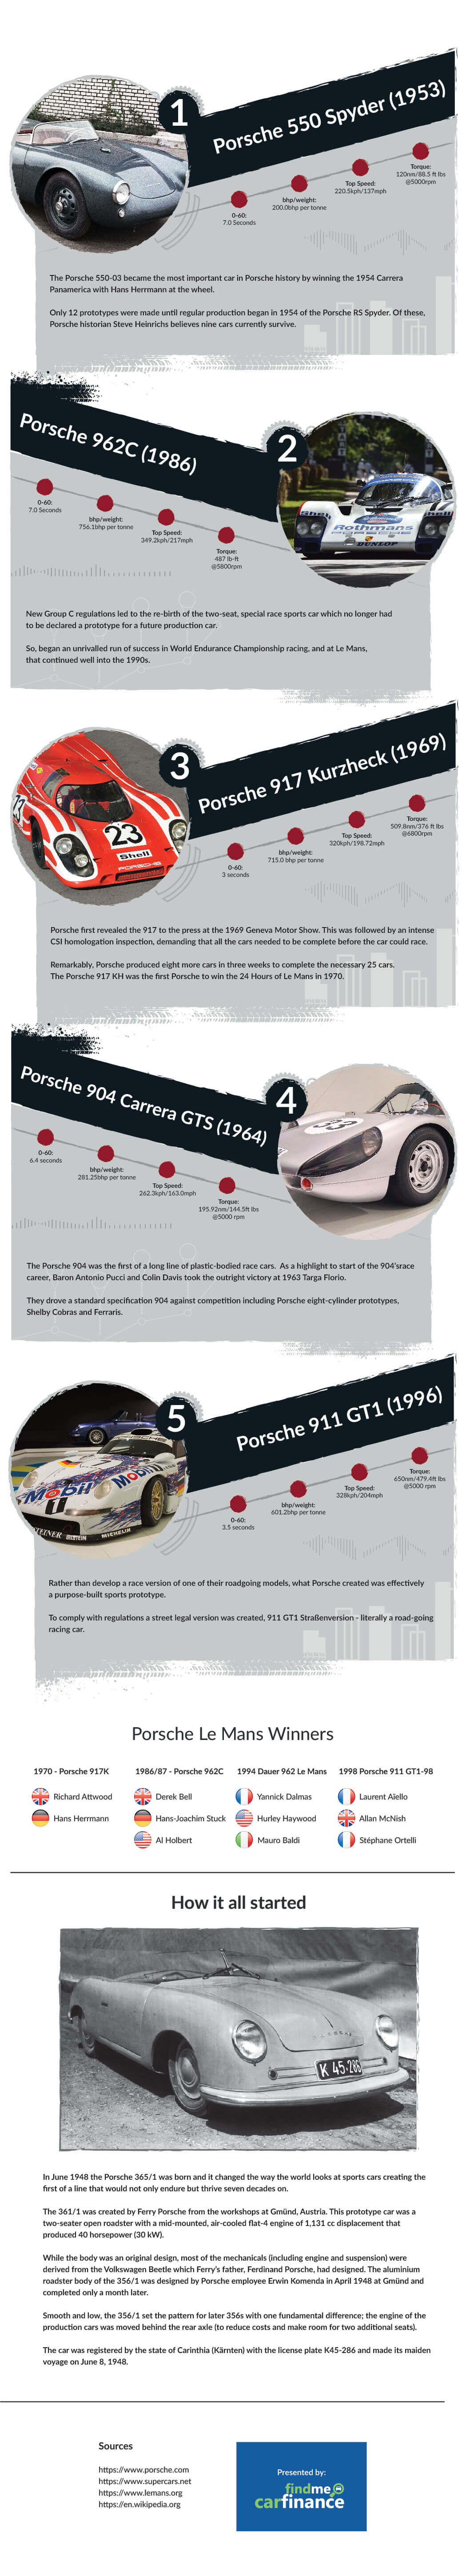 Under the Hood of Porsche's top 5 Motorsport Cars